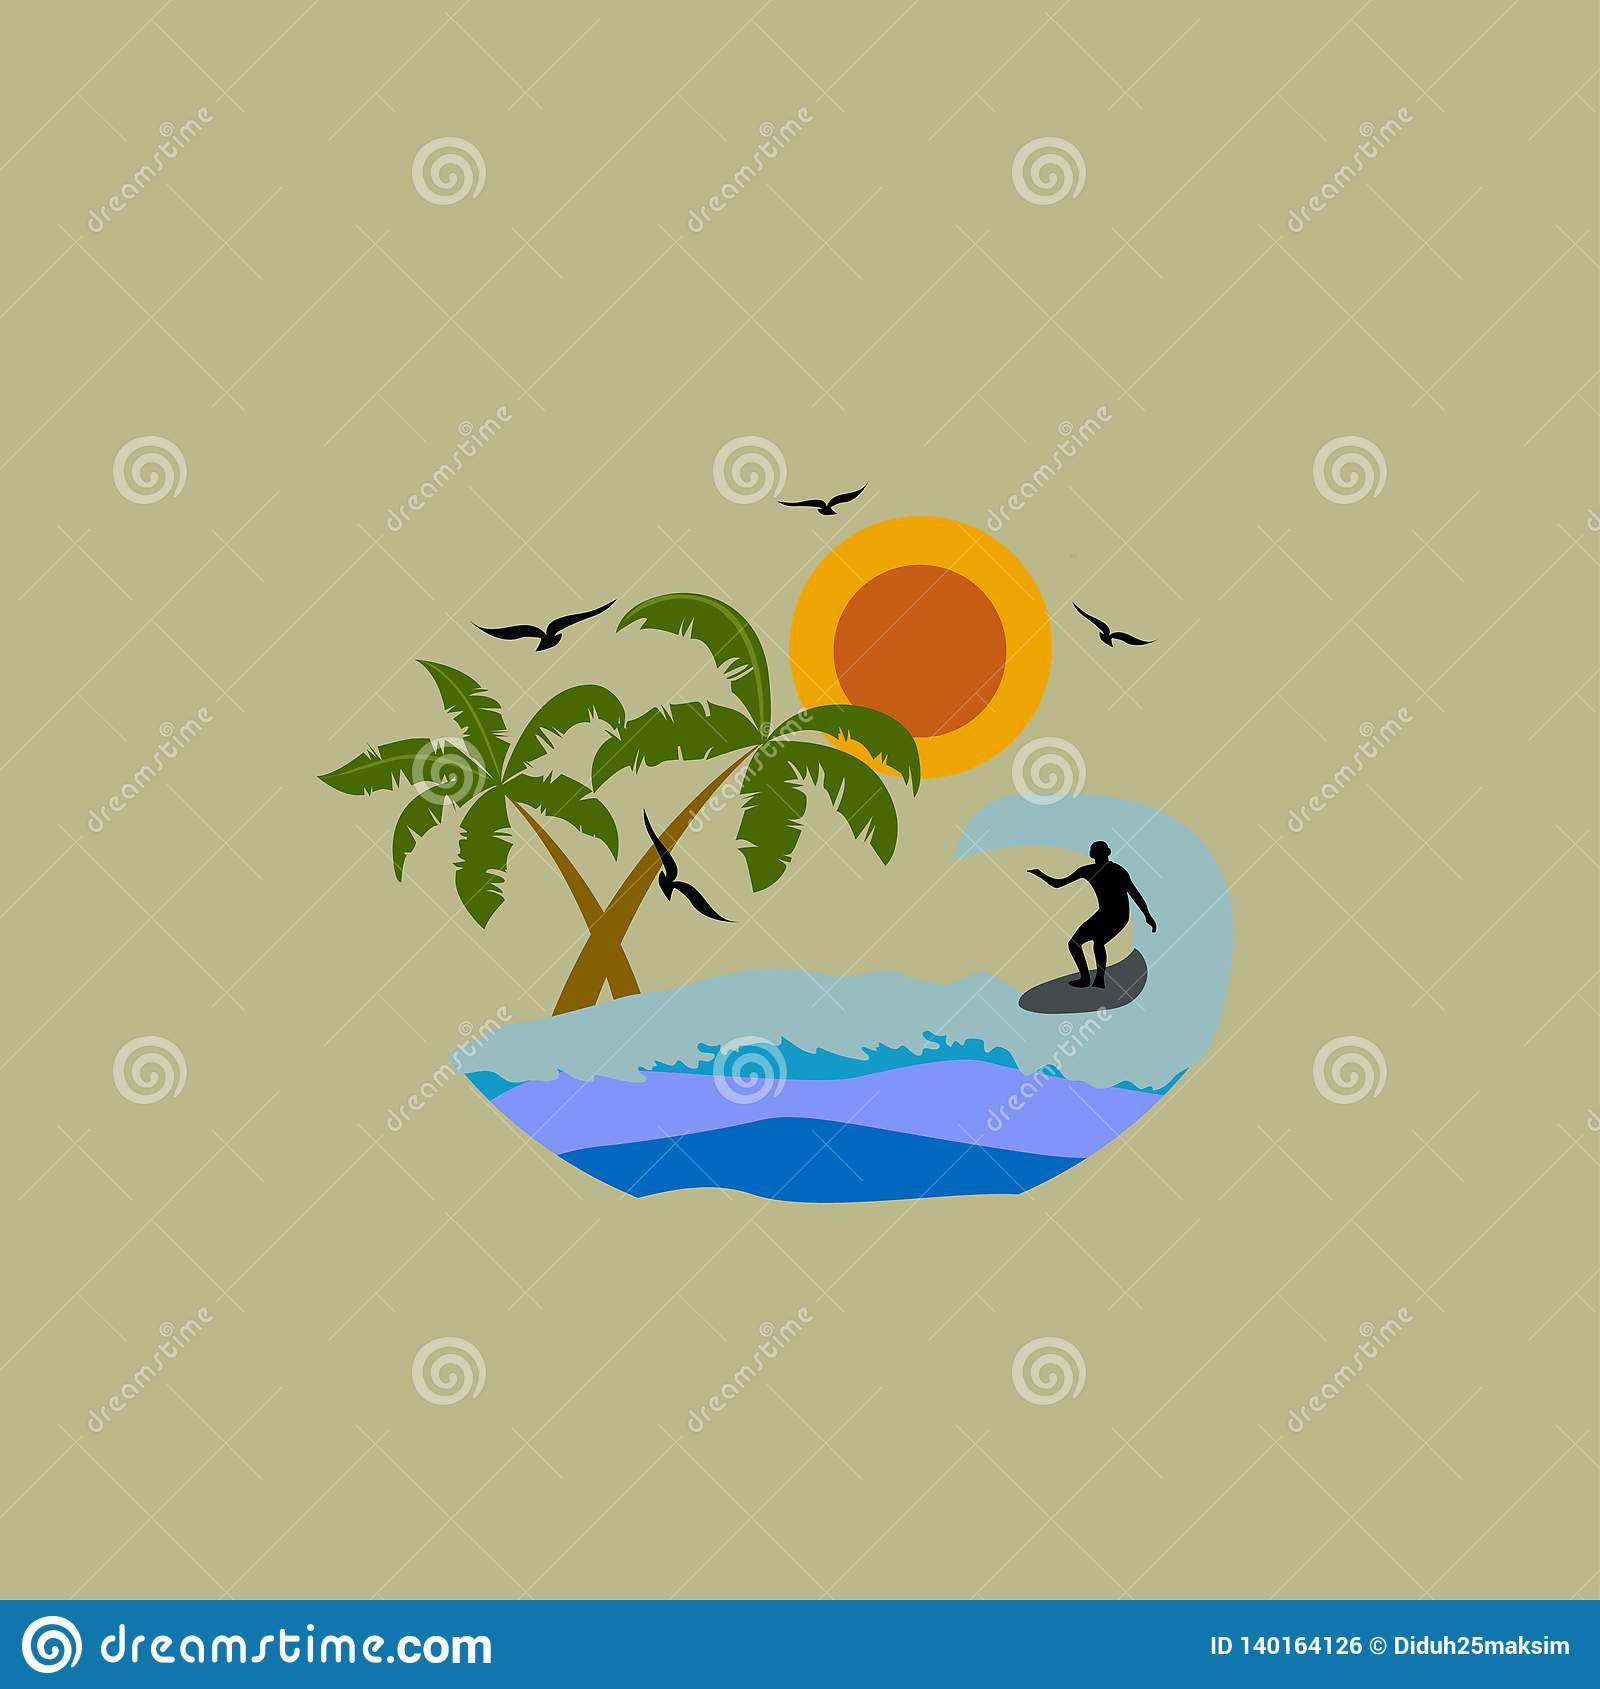 Surfing. Waves. Palm trees. Vector illustration. EPS 10